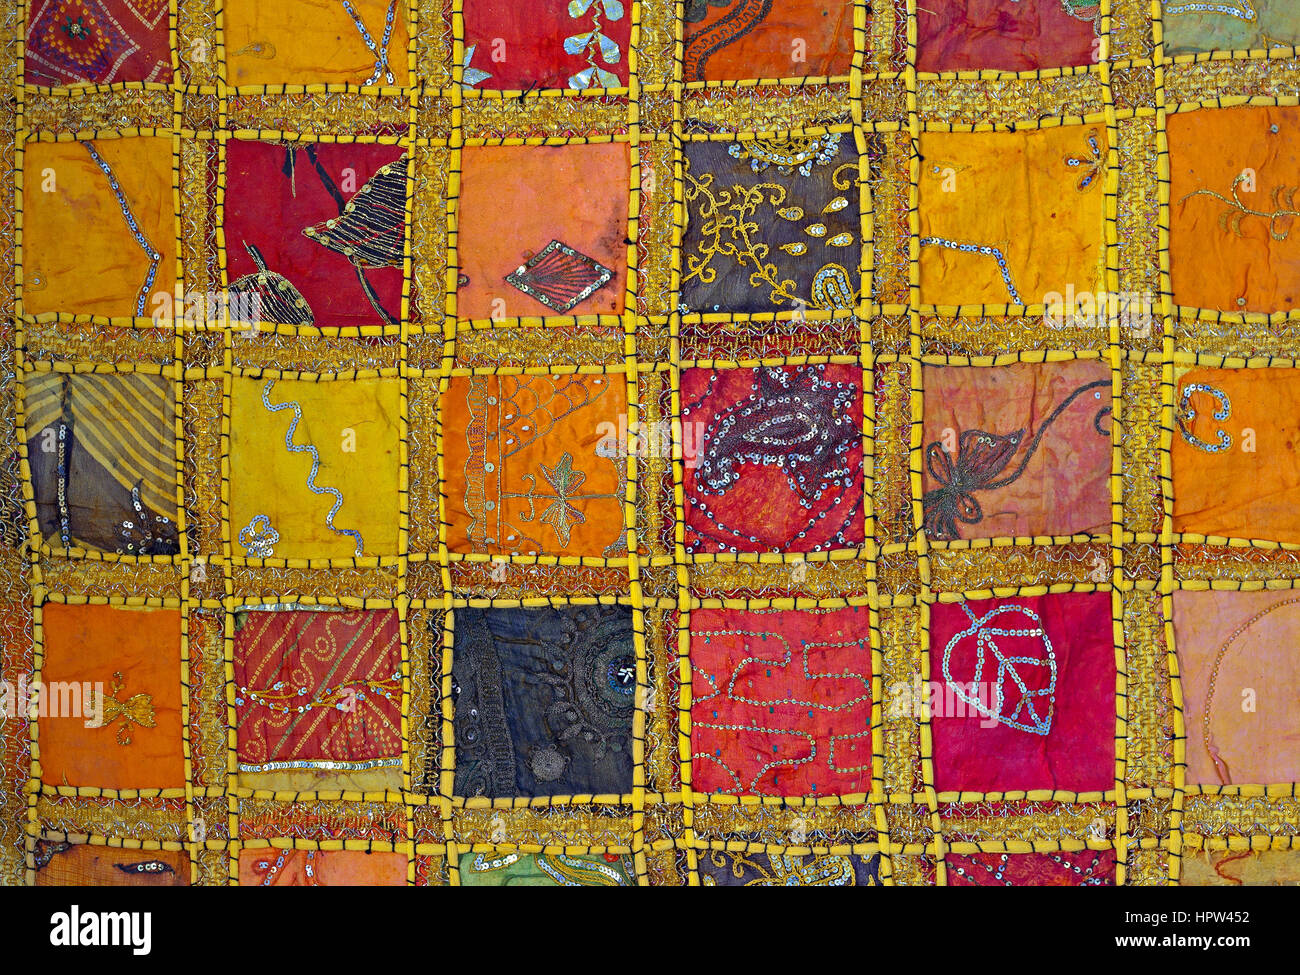 Wall Hanging Tapestry Stock Photos Amp Wall Hanging Tapestry